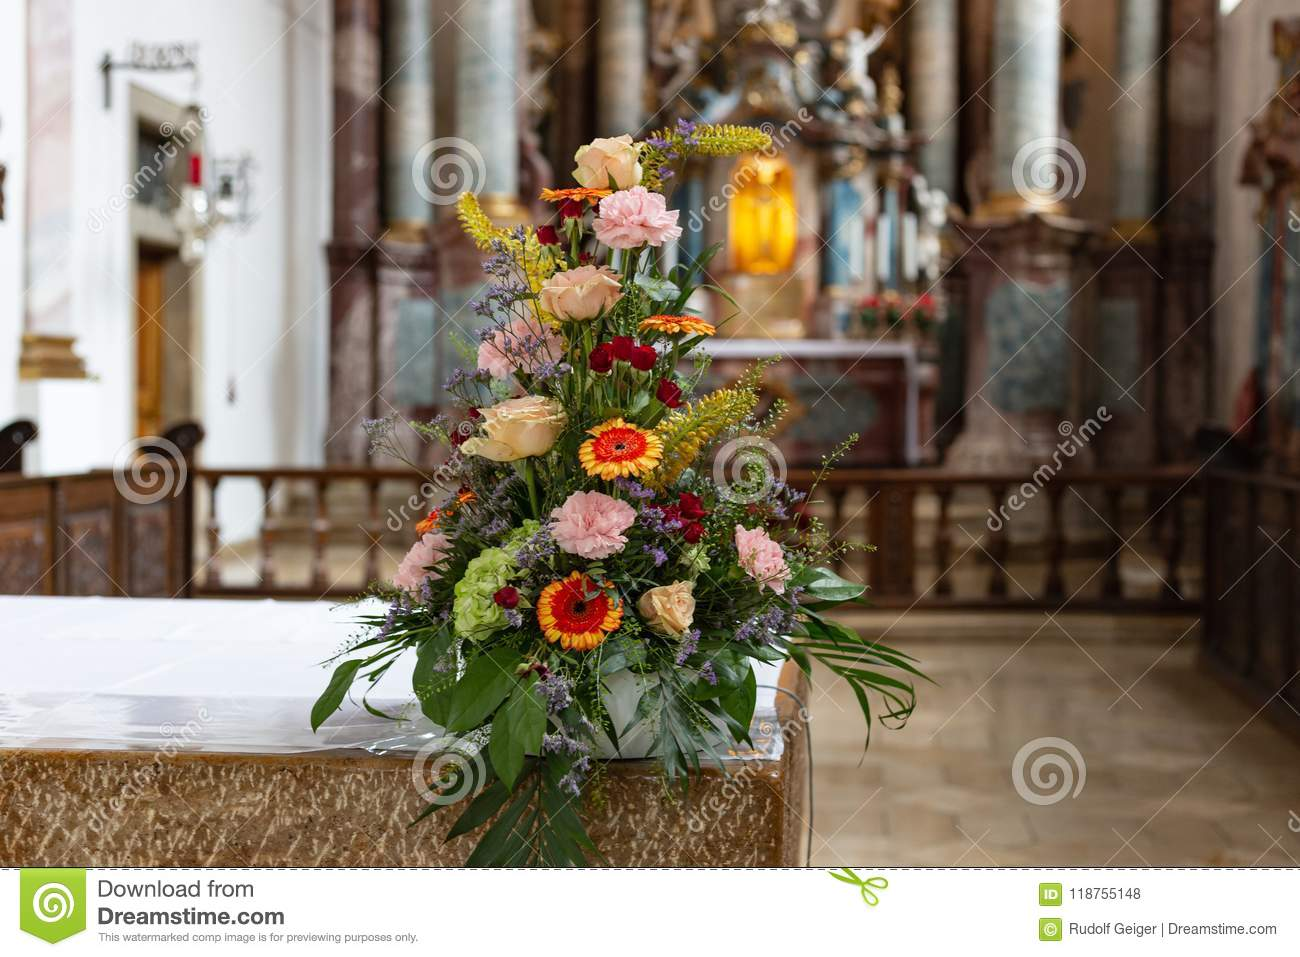 Flower Bouquet In Church Altar Stock Photo Image Of Cathedral Catholic 118755148